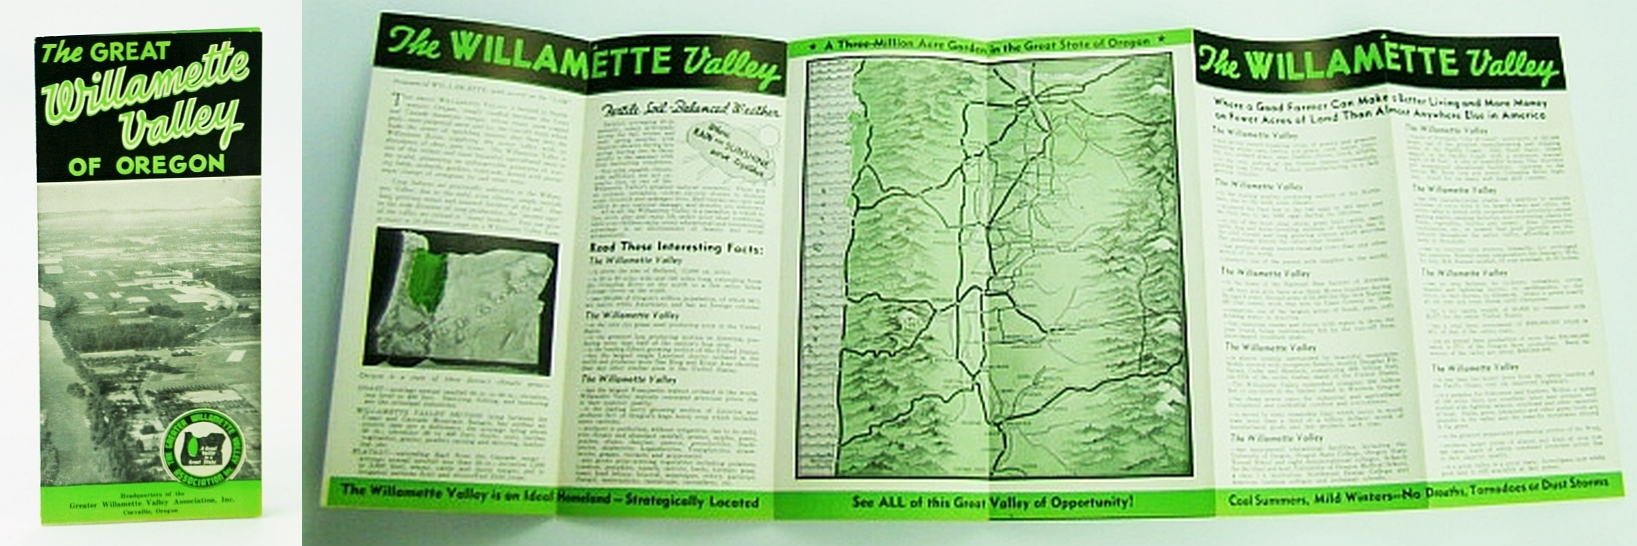 Image for The Great Willamette Valley of Oregon - Vintage Promotional Brochure